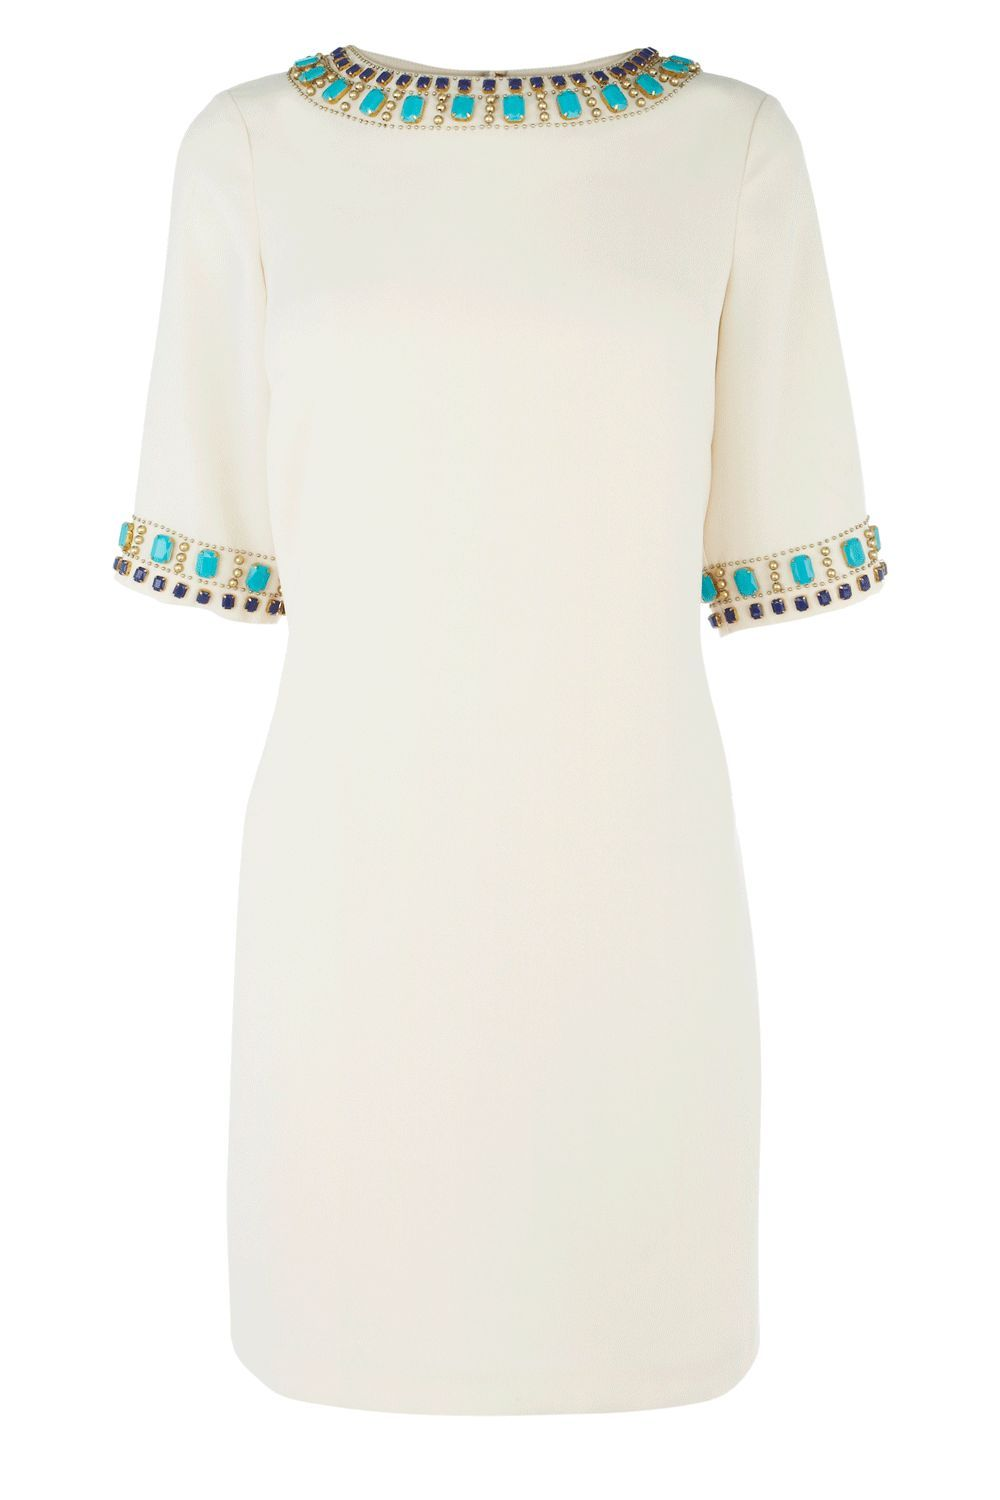 Women's Embellished Cuff Shift Dress, Cream - style: shift; neckline: round neck; fit: fitted at waist; pattern: plain; bust detail: added detail/embellishment at bust; predominant colour: ivory; occasions: casual, occasion; length: just above the knee; fibres: polyester/polyamide - 100%; material texture: chiffon; sleeve length: half sleeve; sleeve style: standard; texture group: sheer fabrics/chiffon/organza etc.; pattern type: fabric; embellishment: beading